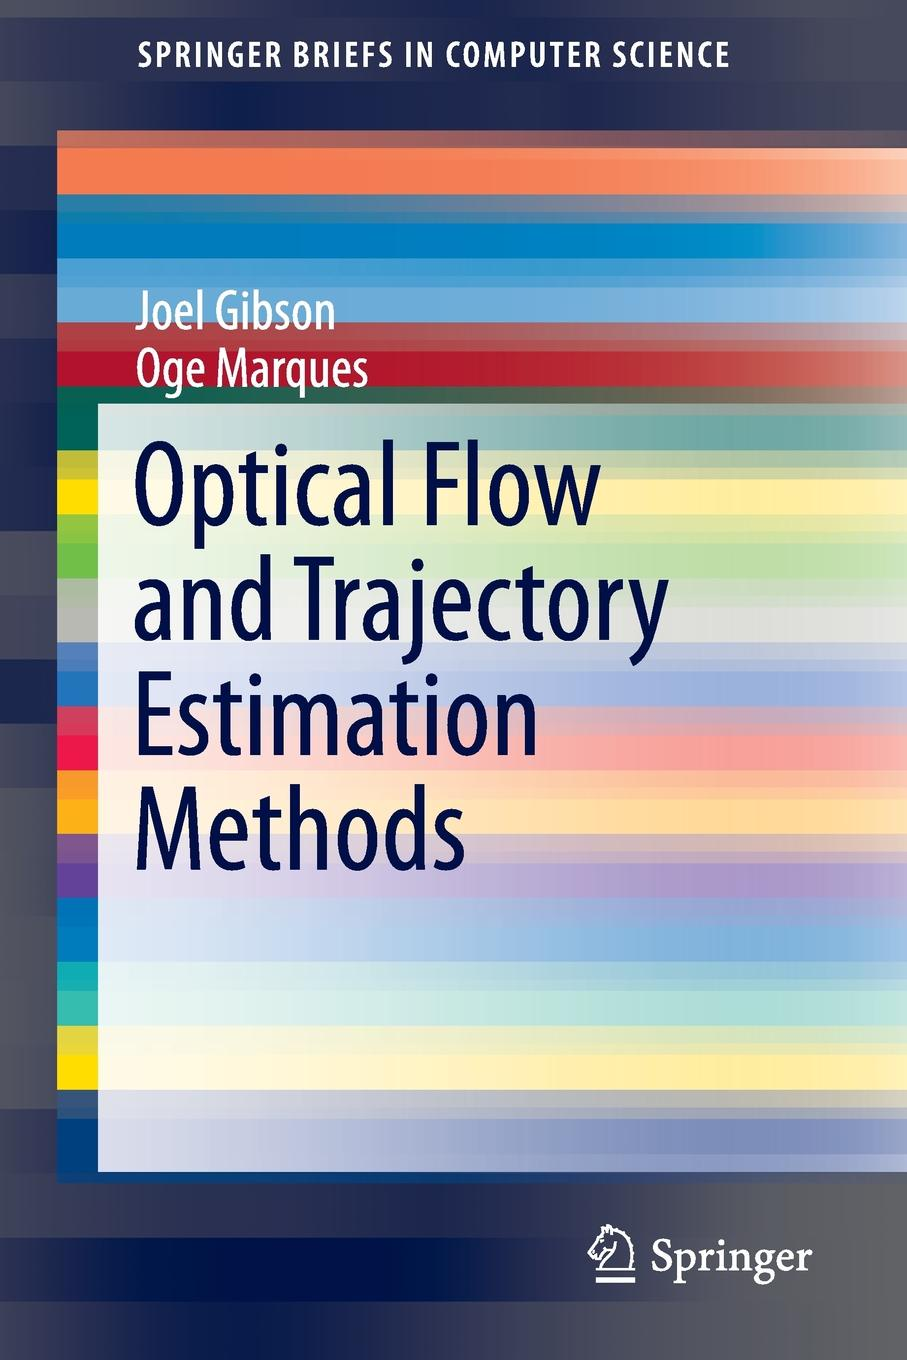 лучшая цена Joel Gibson, Oge Marques Optical Flow and Trajectory Estimation Methods